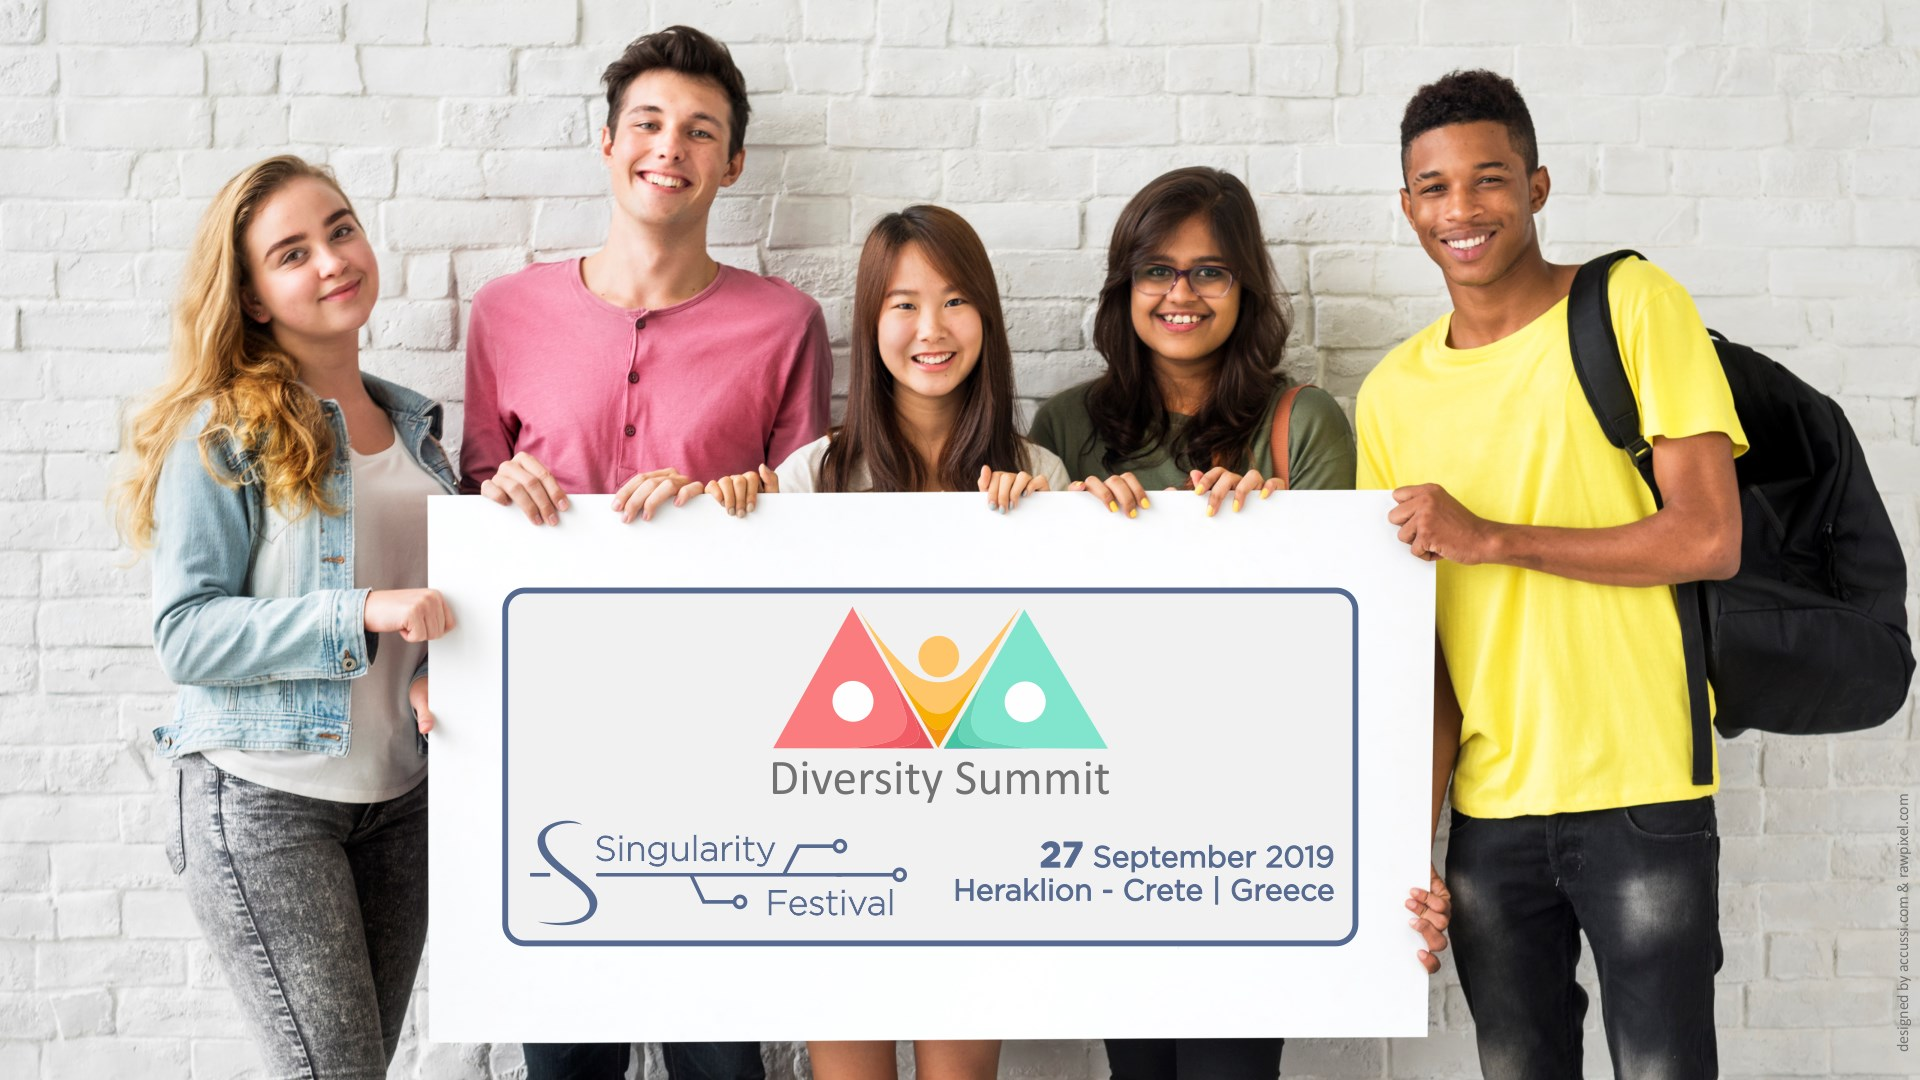 You are currently viewing Singularity Festival Week (SFW19) – Diversity Summit – Heraklion, Crete